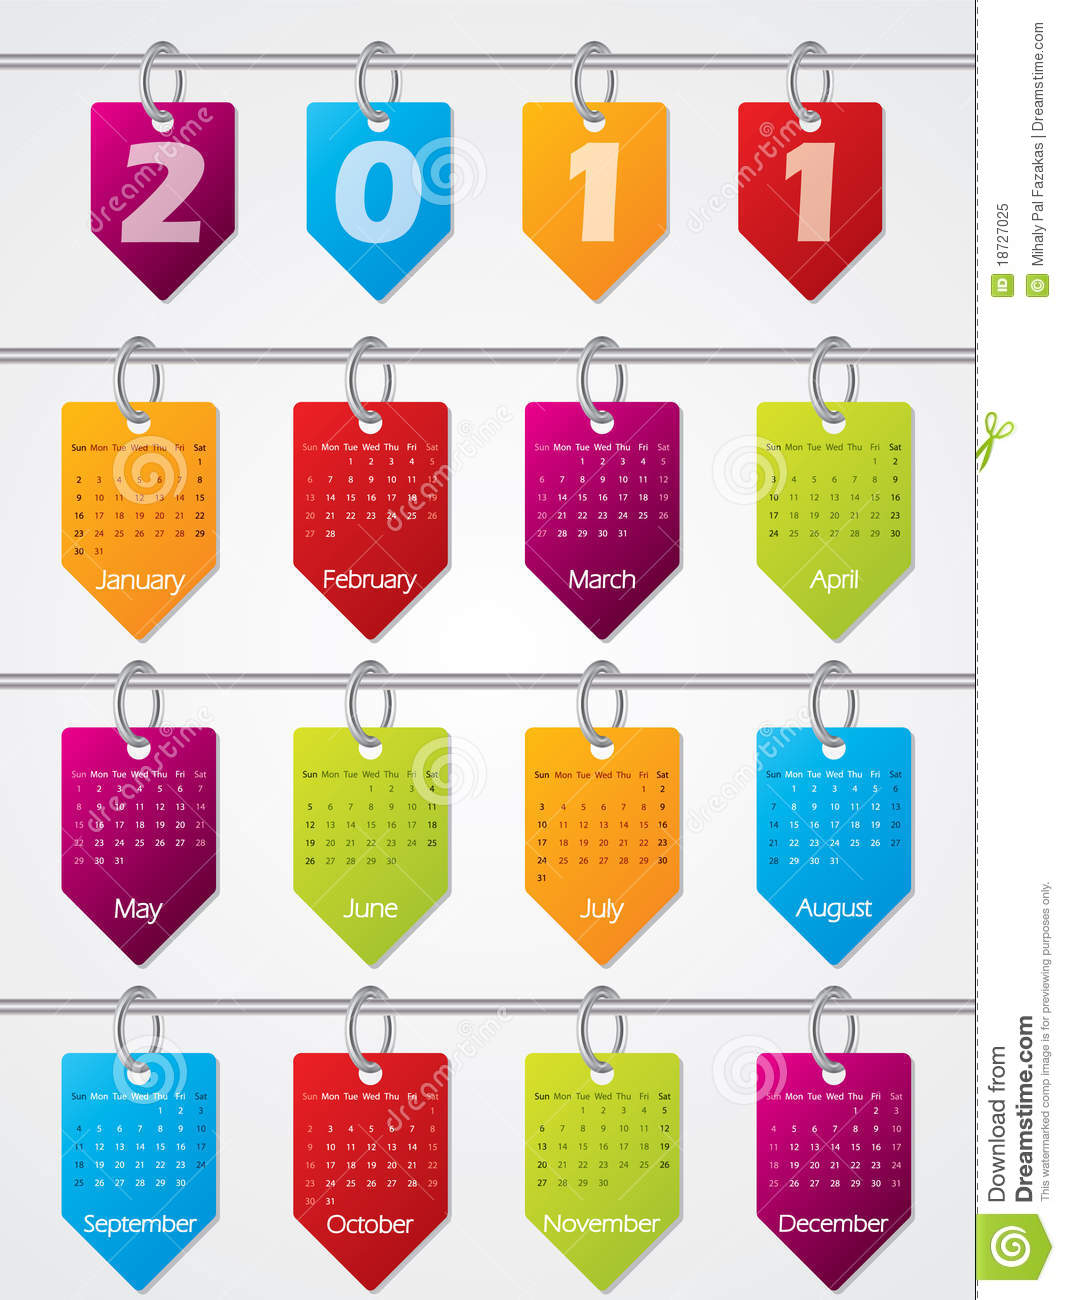 Hanging Calendar Design : Hanging calendar design for royalty free stock photo